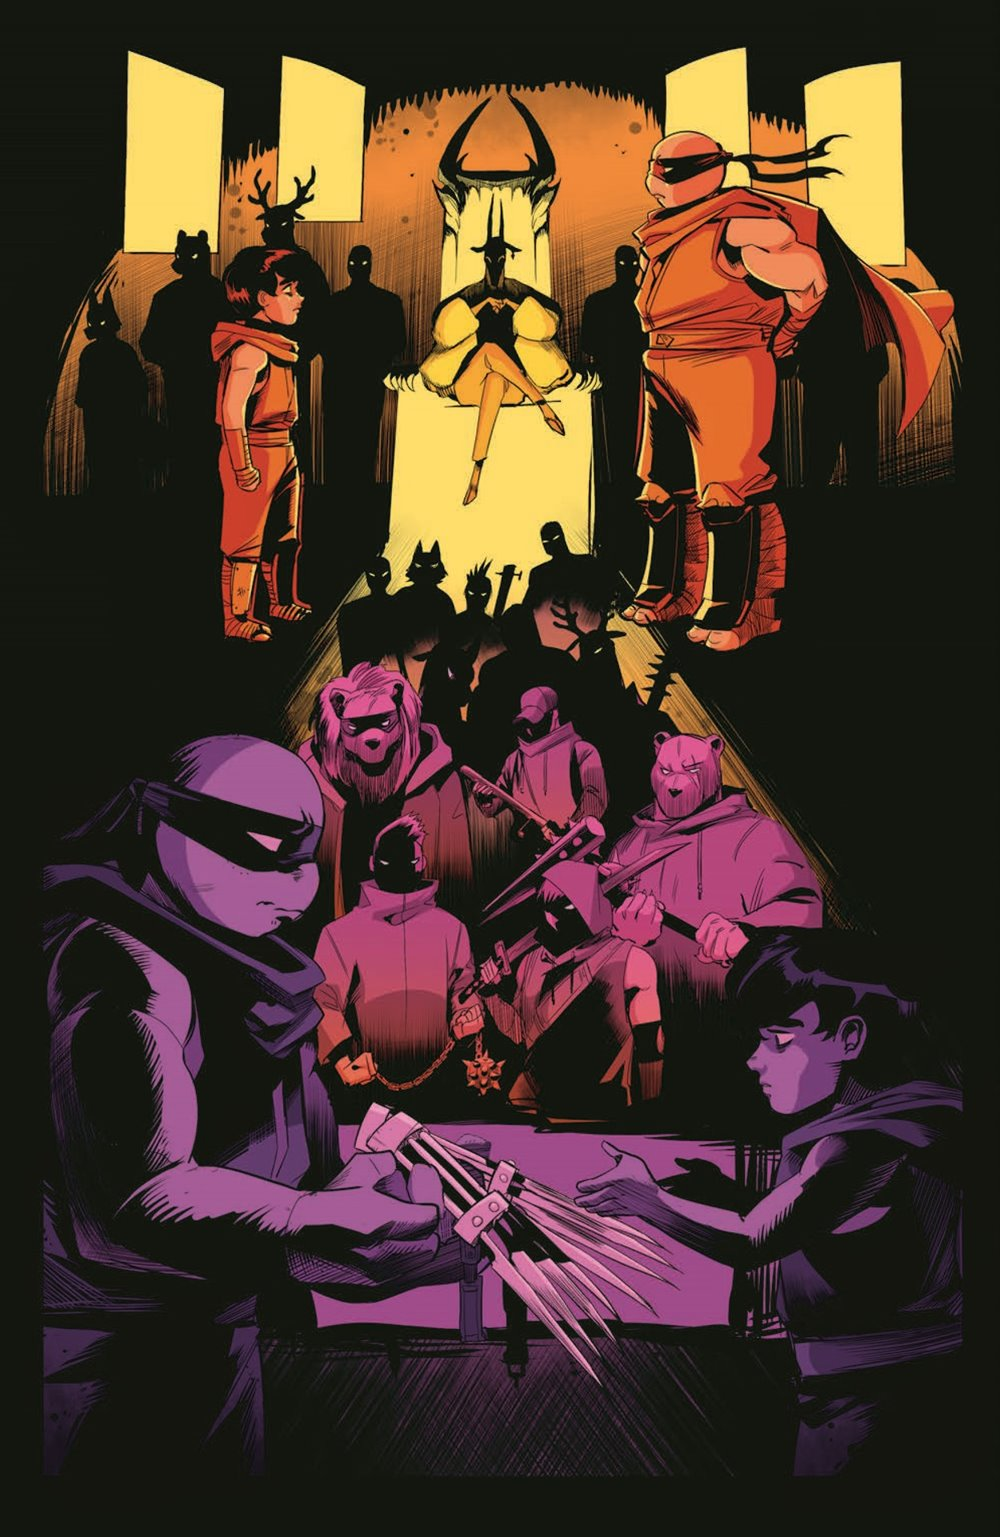 TMNT-JennikaII_06_pr-3 ComicList Previews: TEENAGE MUTANT NINJA TURTLES JENNIKA II #6 (OF 6)